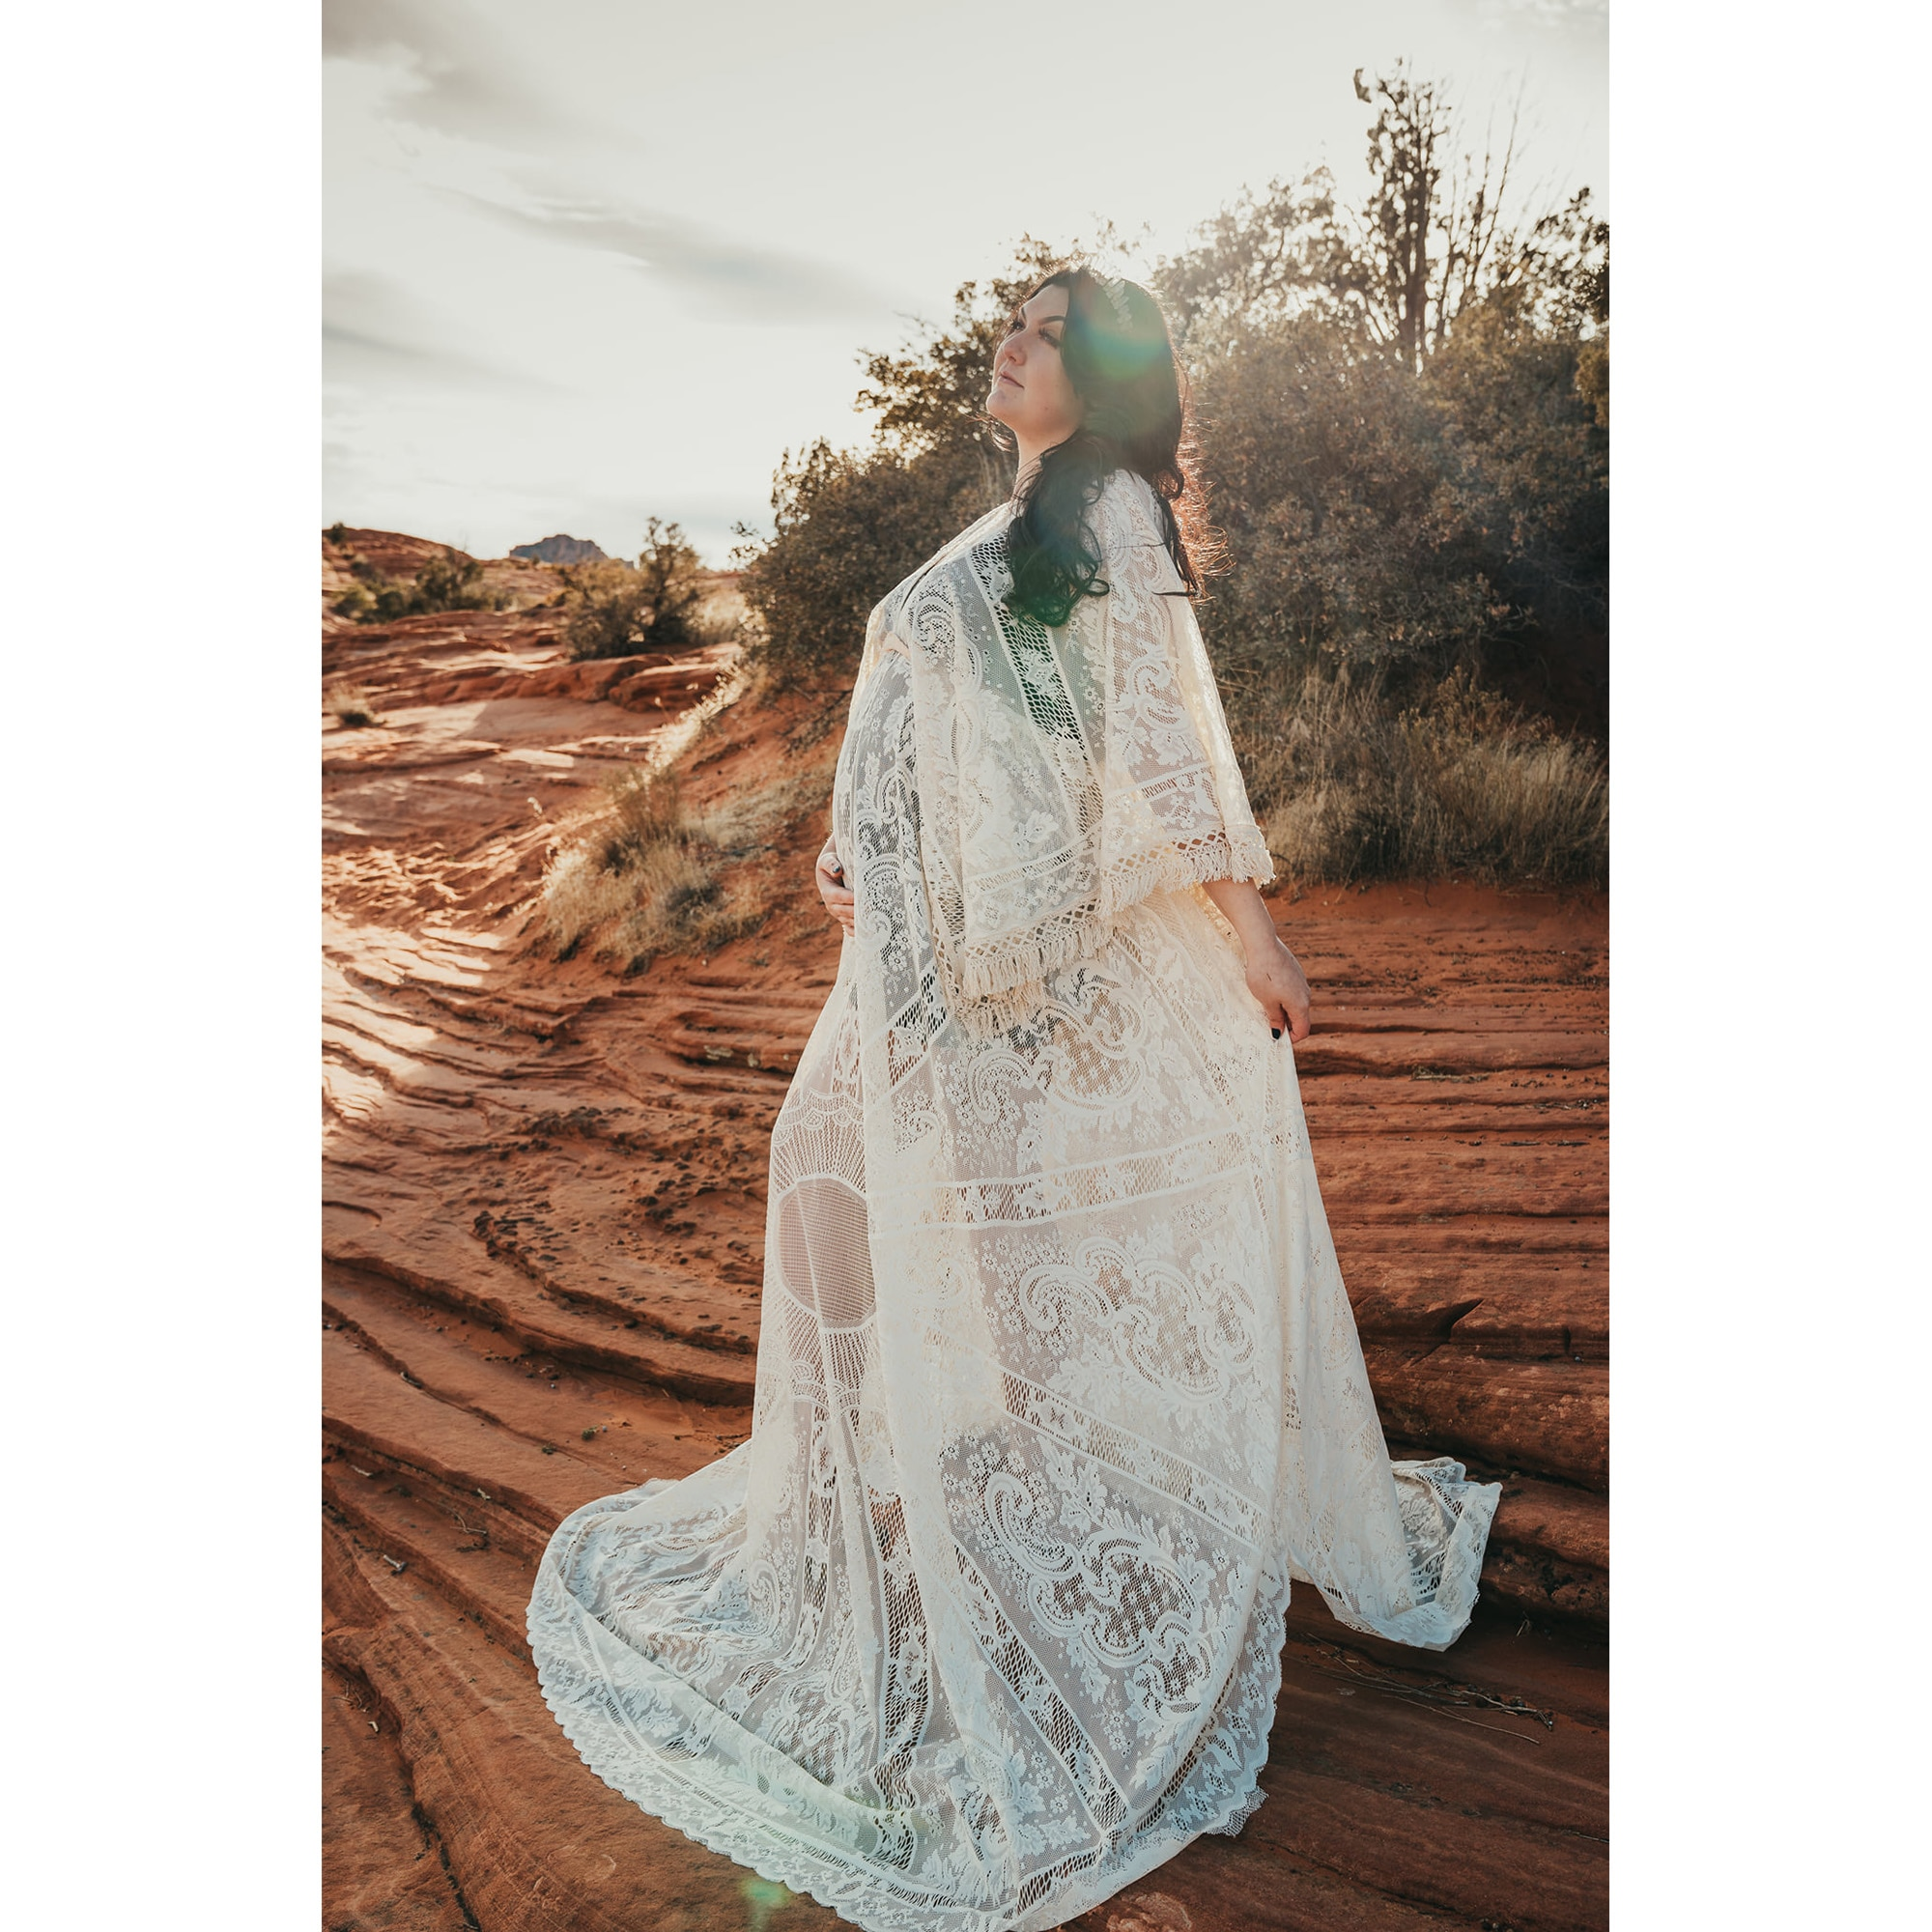 Photo Shoot Costume Boho Maxi Long Bell Sleeves Maternity Dress Pregnancy Gown Lace Robe for Woman Photography Props Baby Shower enlarge